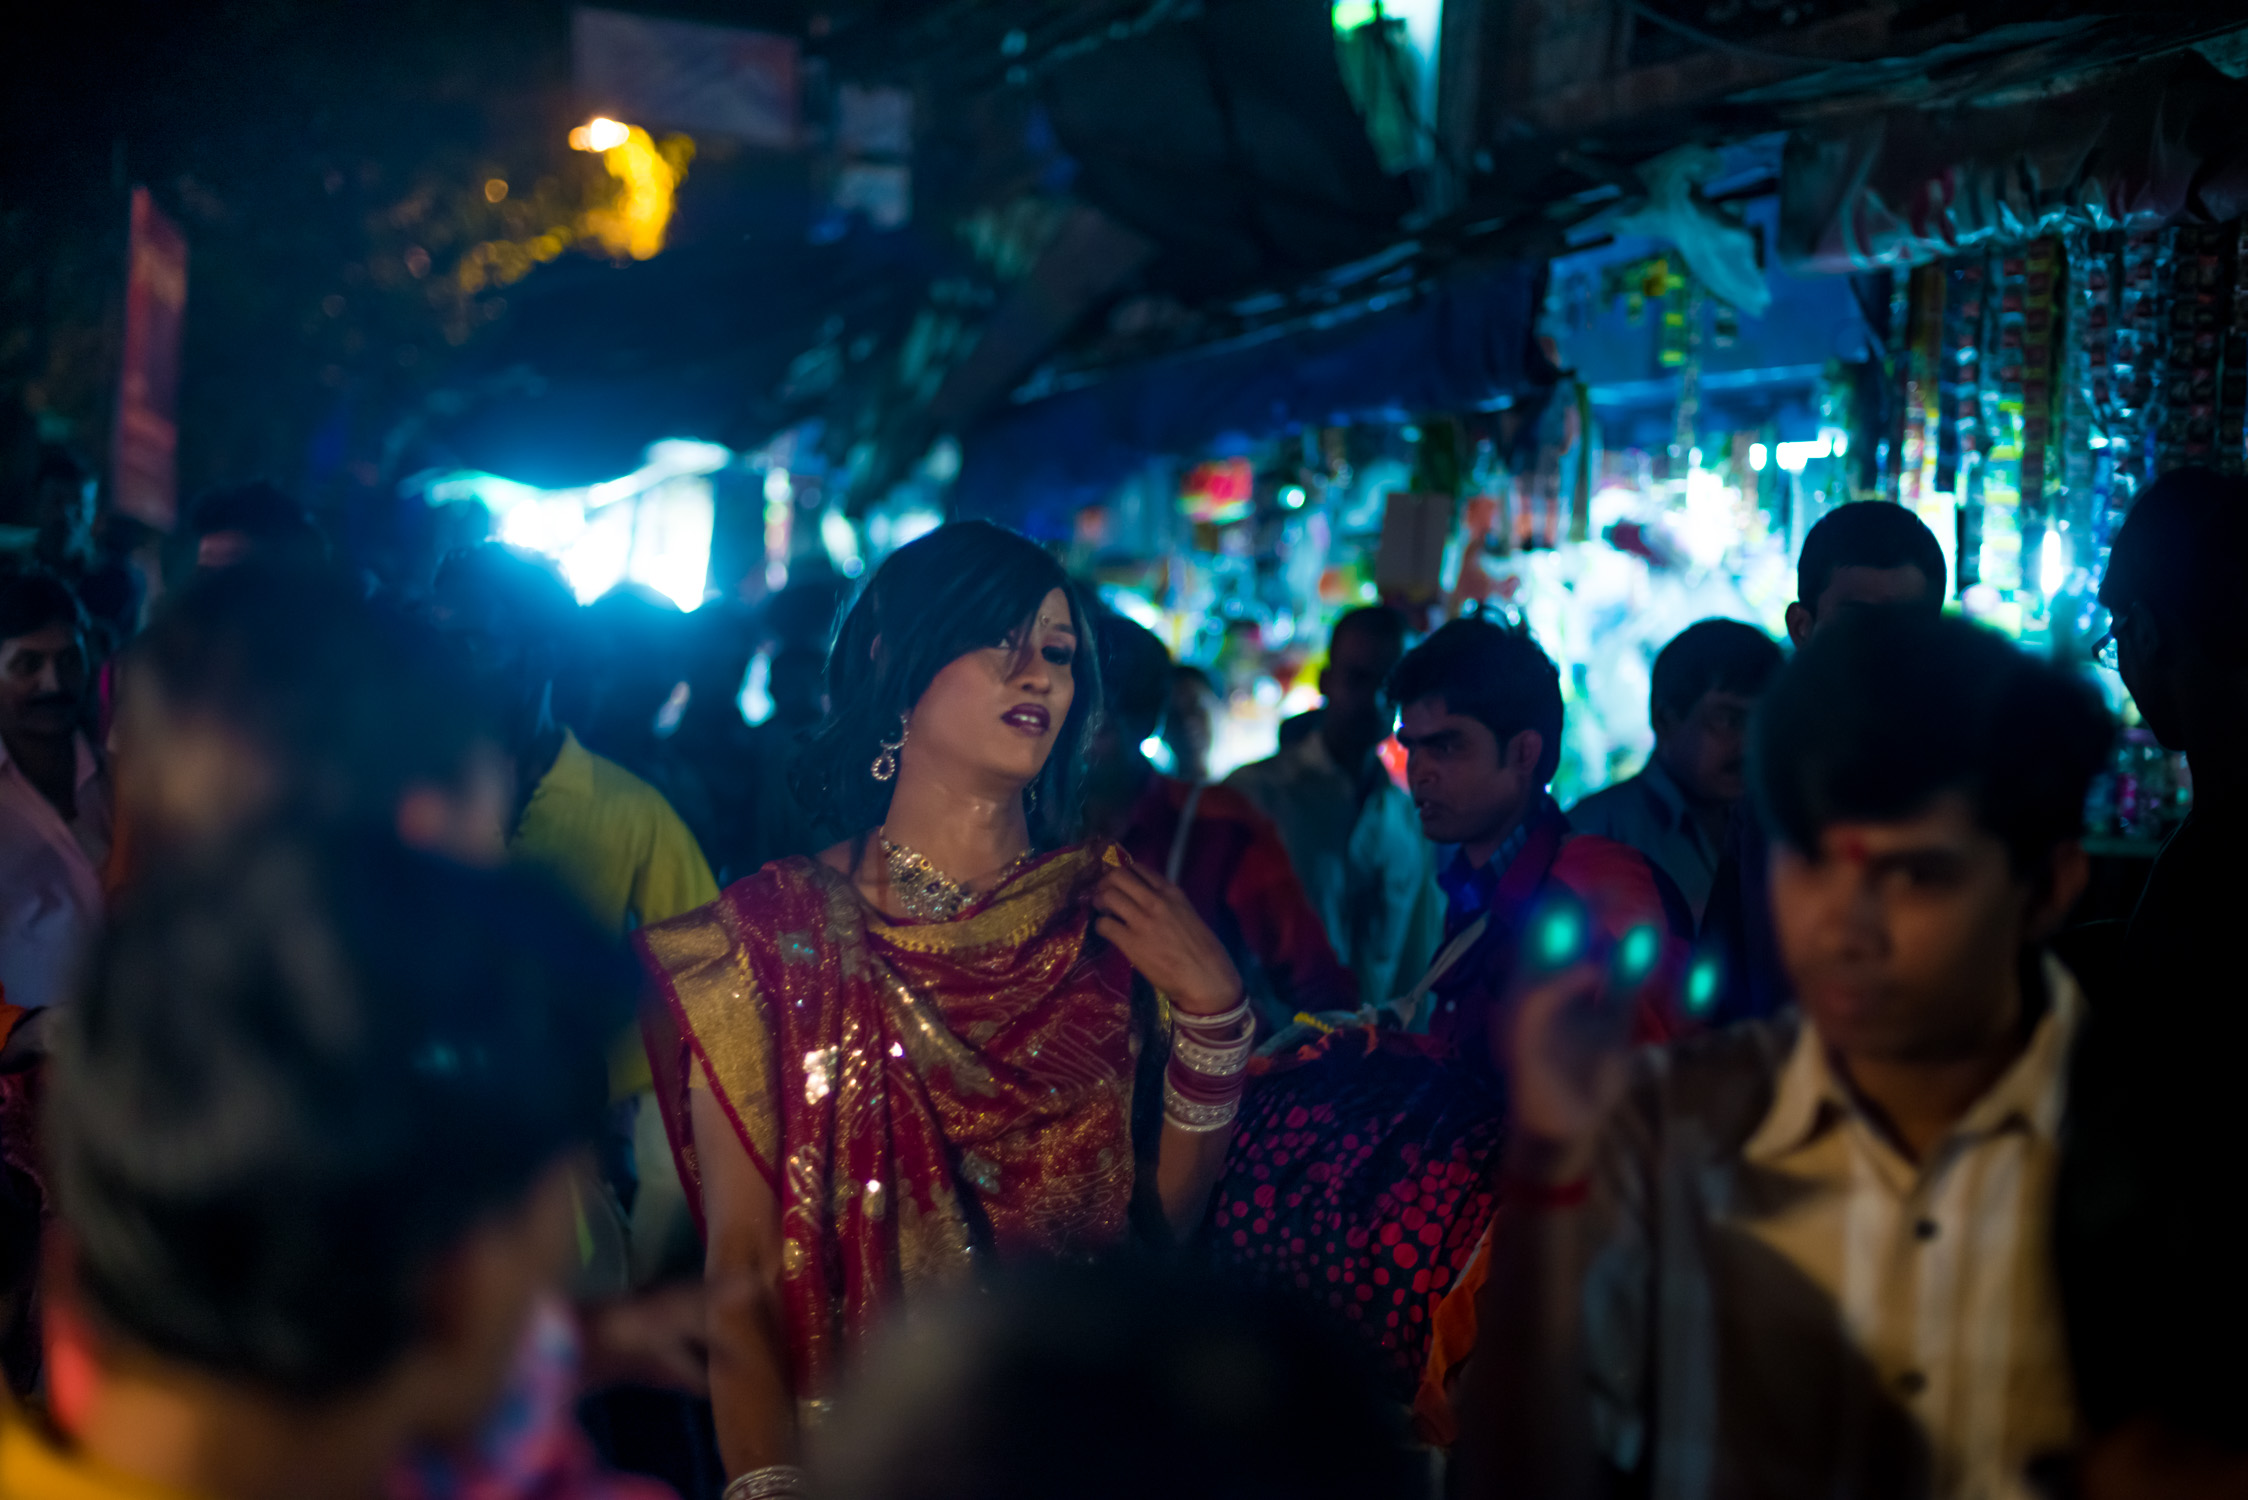 12_Chhandak Pradhan-reportage-Lipstick Men-transgender_dancer_India_Calcutta.jpg